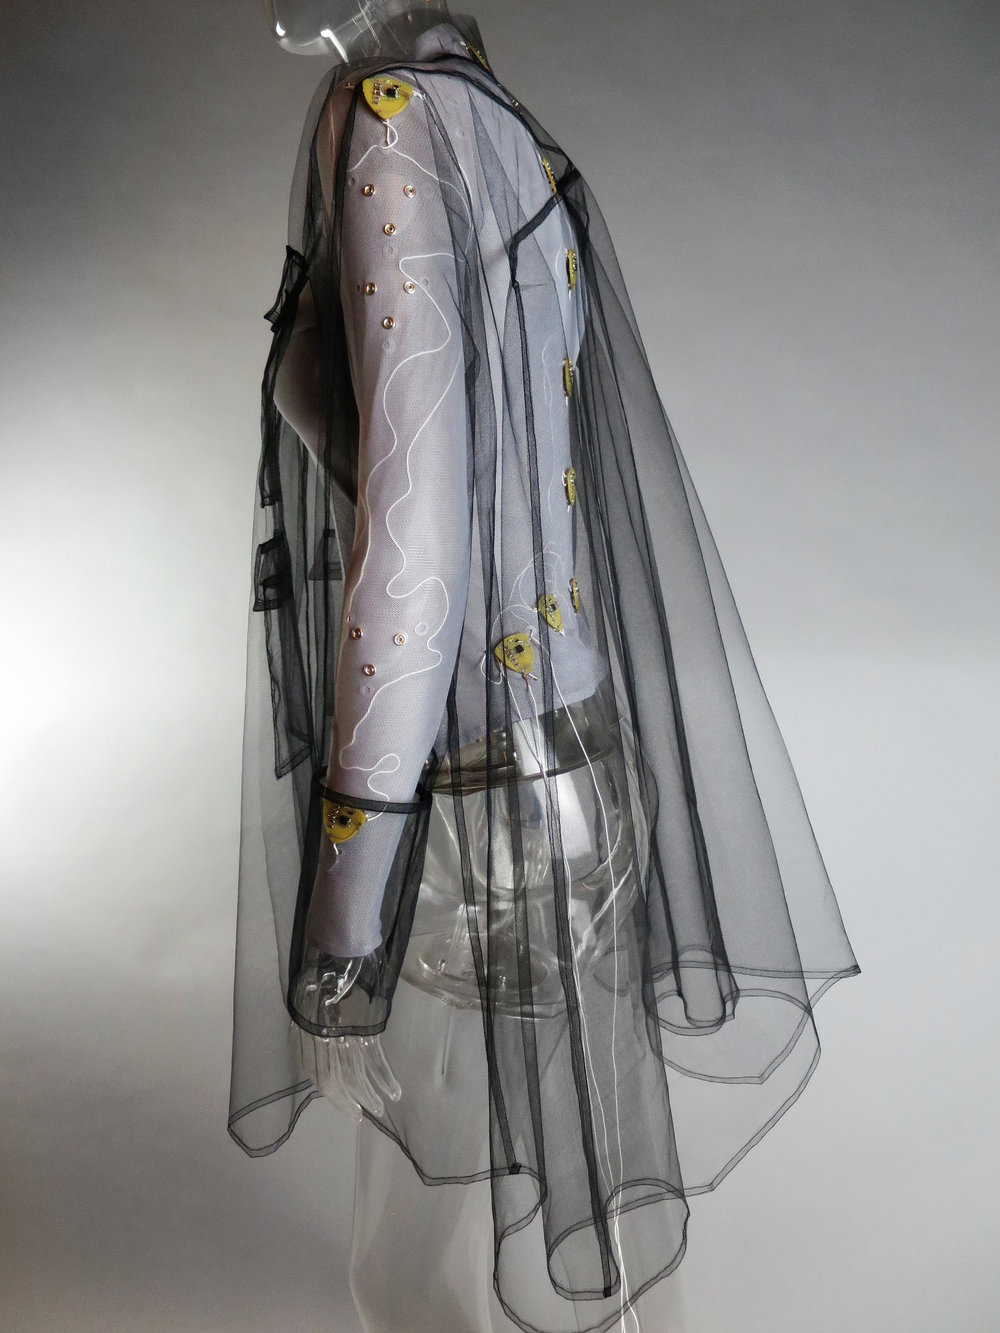 EmobodiSuit by Sophia Brueckner and Rachel Freire. A top covered with wires and actuators that transmit senses such as warmth, coldness, and vibration through data collected to the wearer.